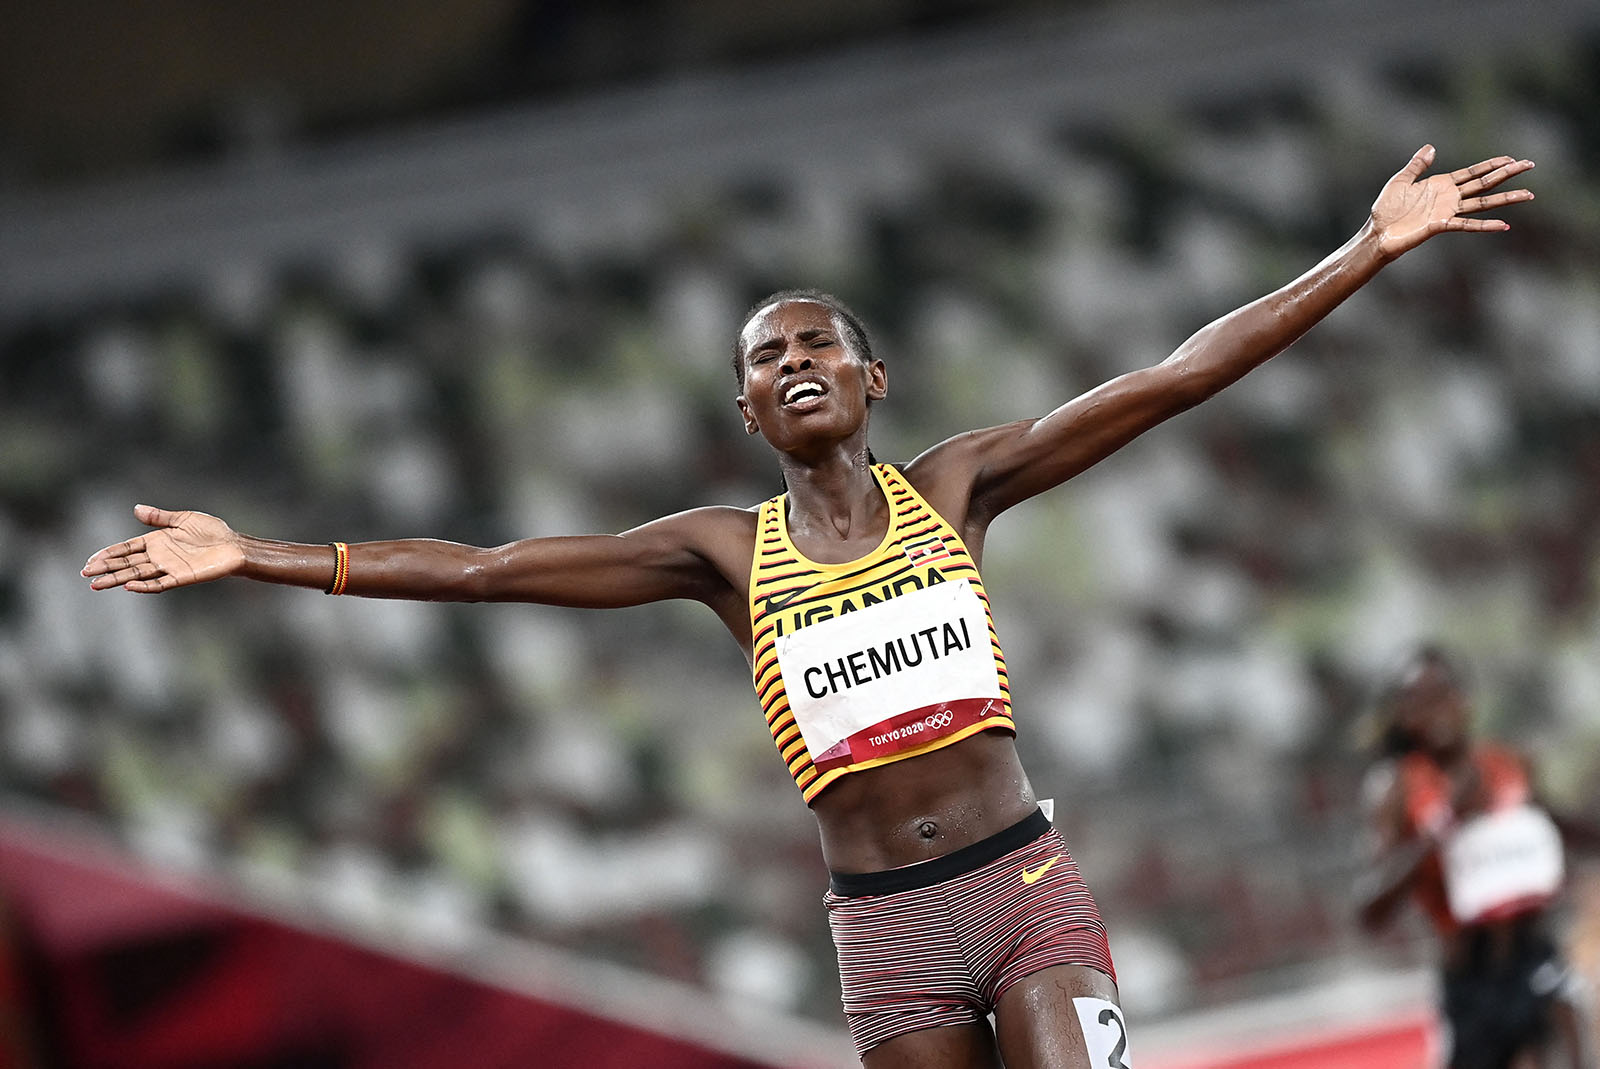 Uganda's Peruth Chemutai reacts after winning the women's 3000m steeplechase final on August 4.